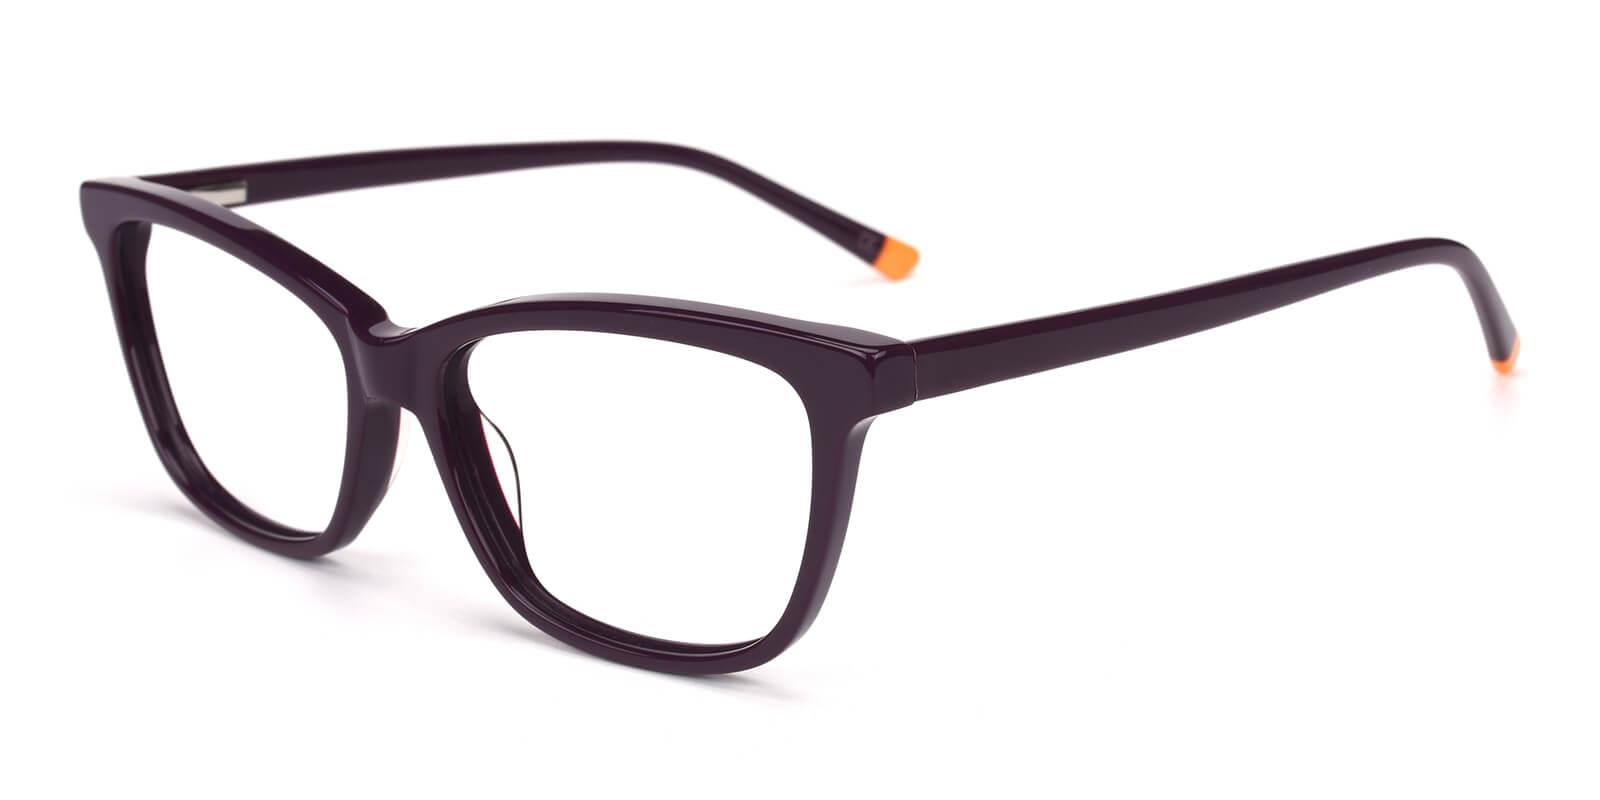 Clowdia-Purple-Square / Cat-Acetate-Eyeglasses-additional1